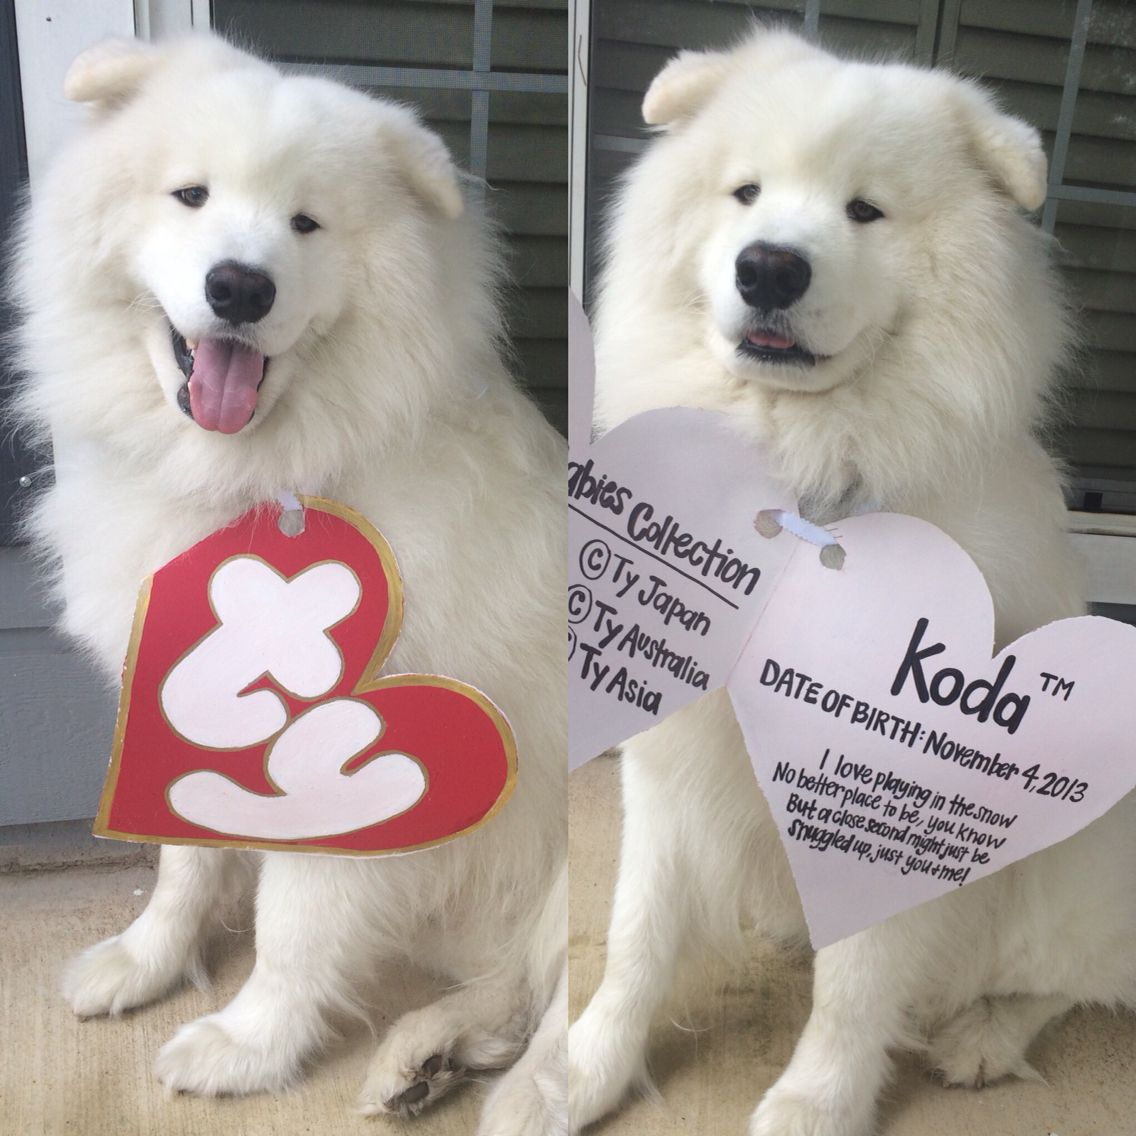 My dog kodathesamoyed in his beanie baby costume for